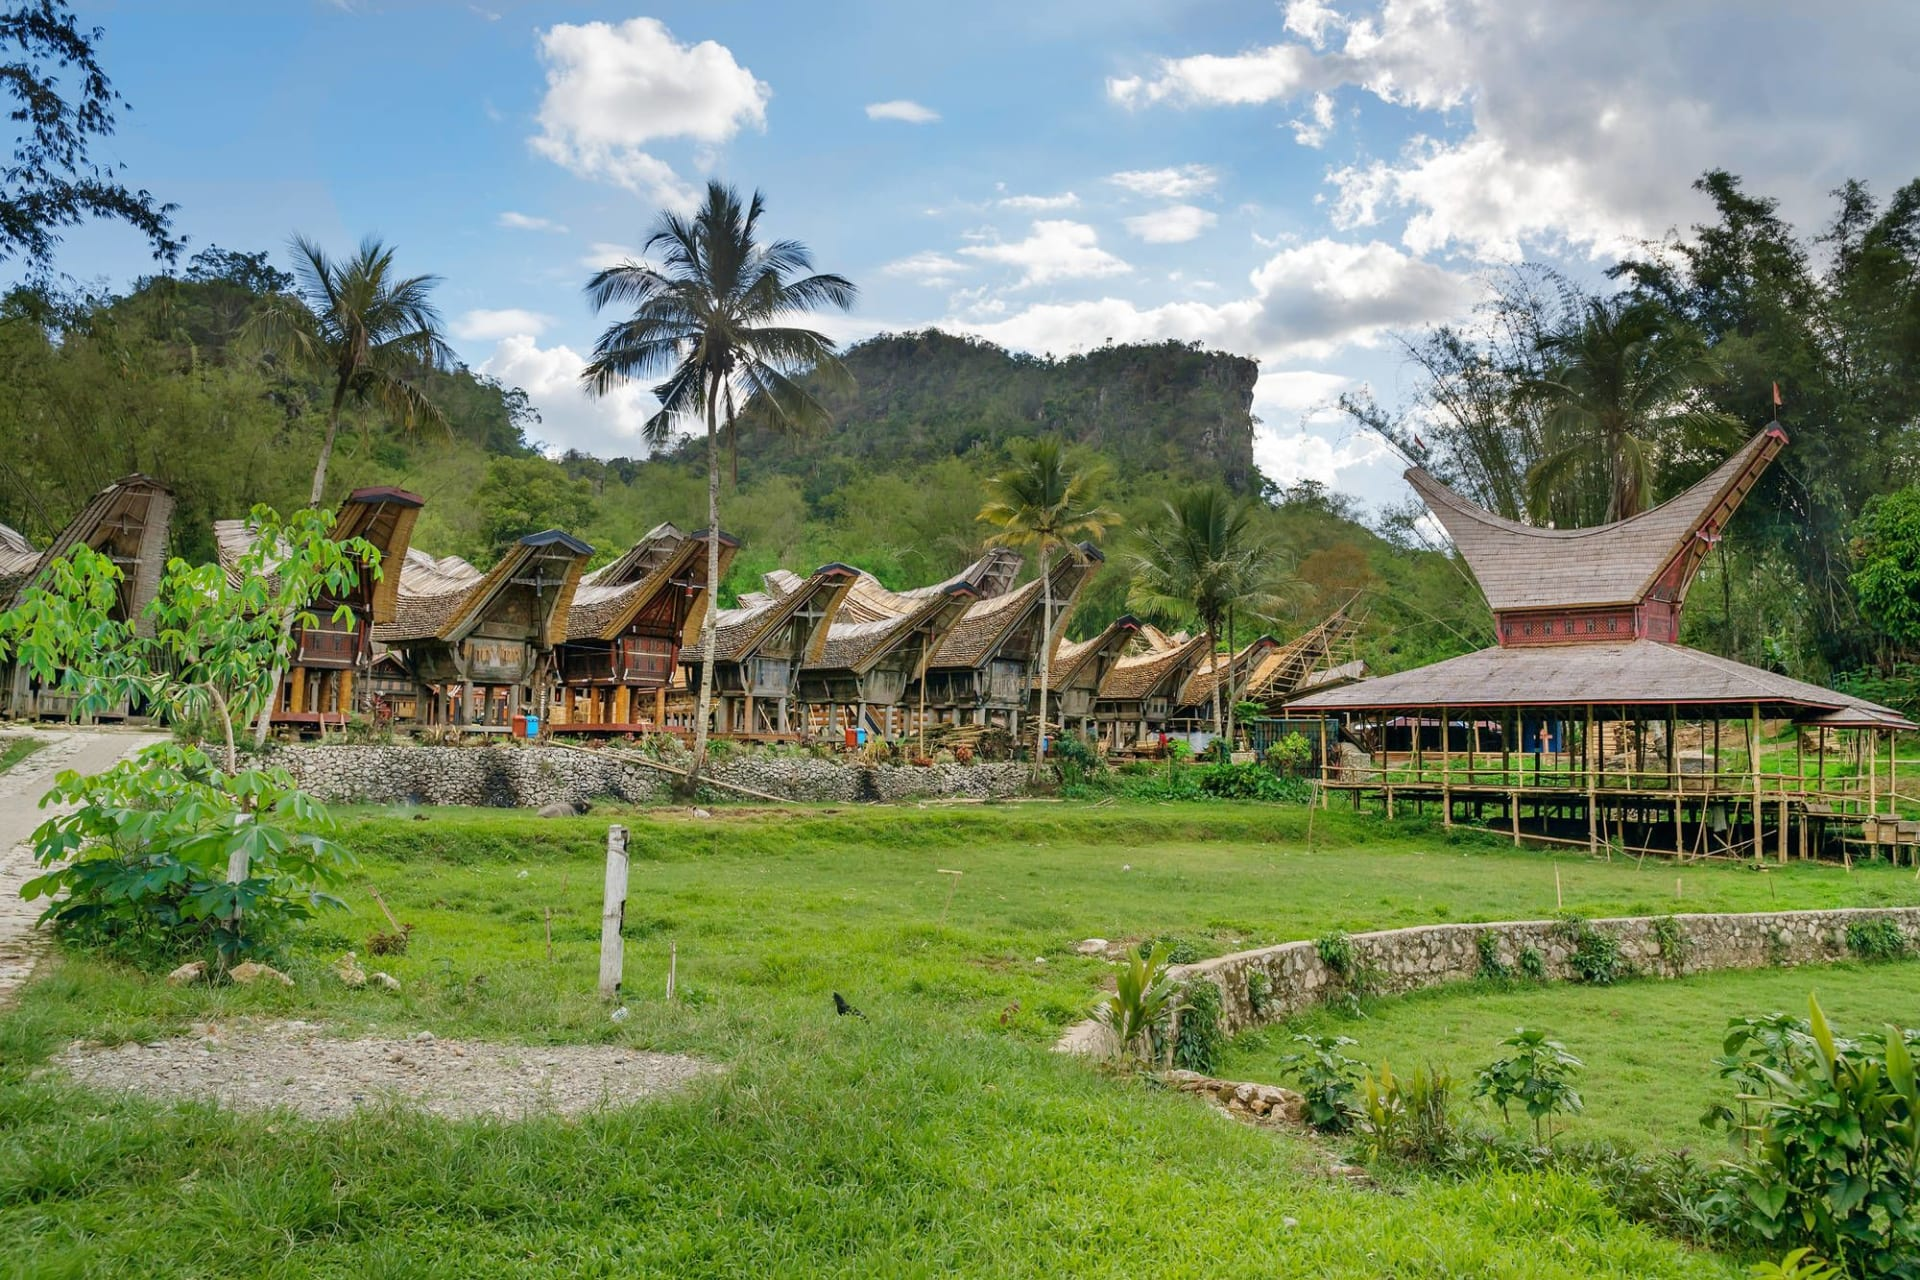 Sulawesi Toraja Tongkonan traditional village Kete Kesu